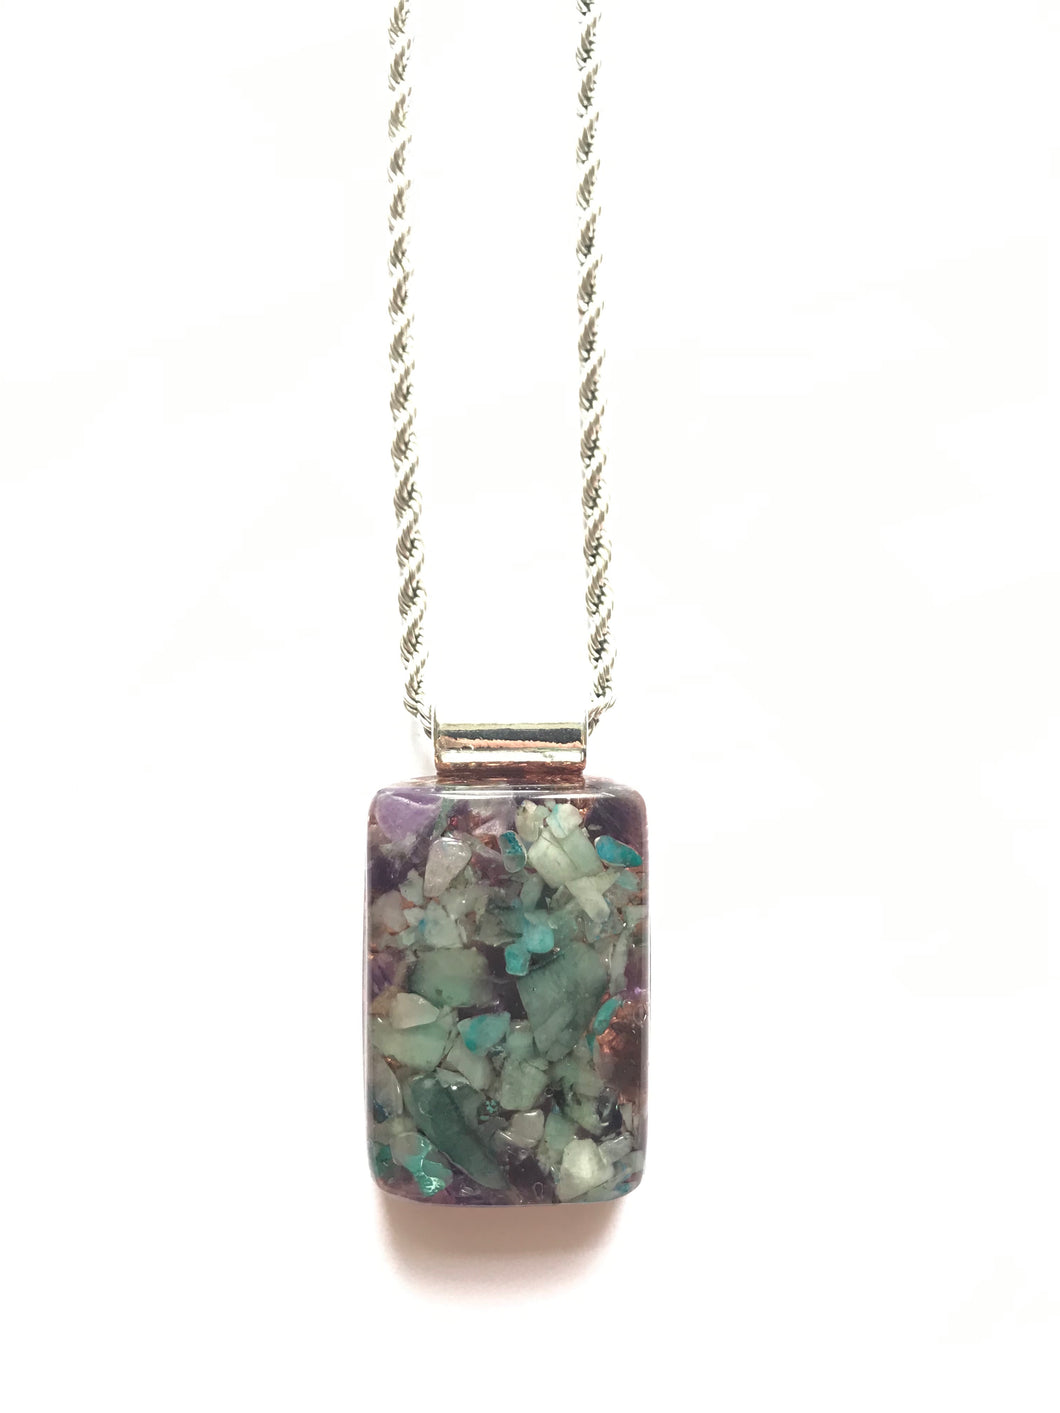 Orgonite Pendant with Emerald, Amethyst & Chrysocolla